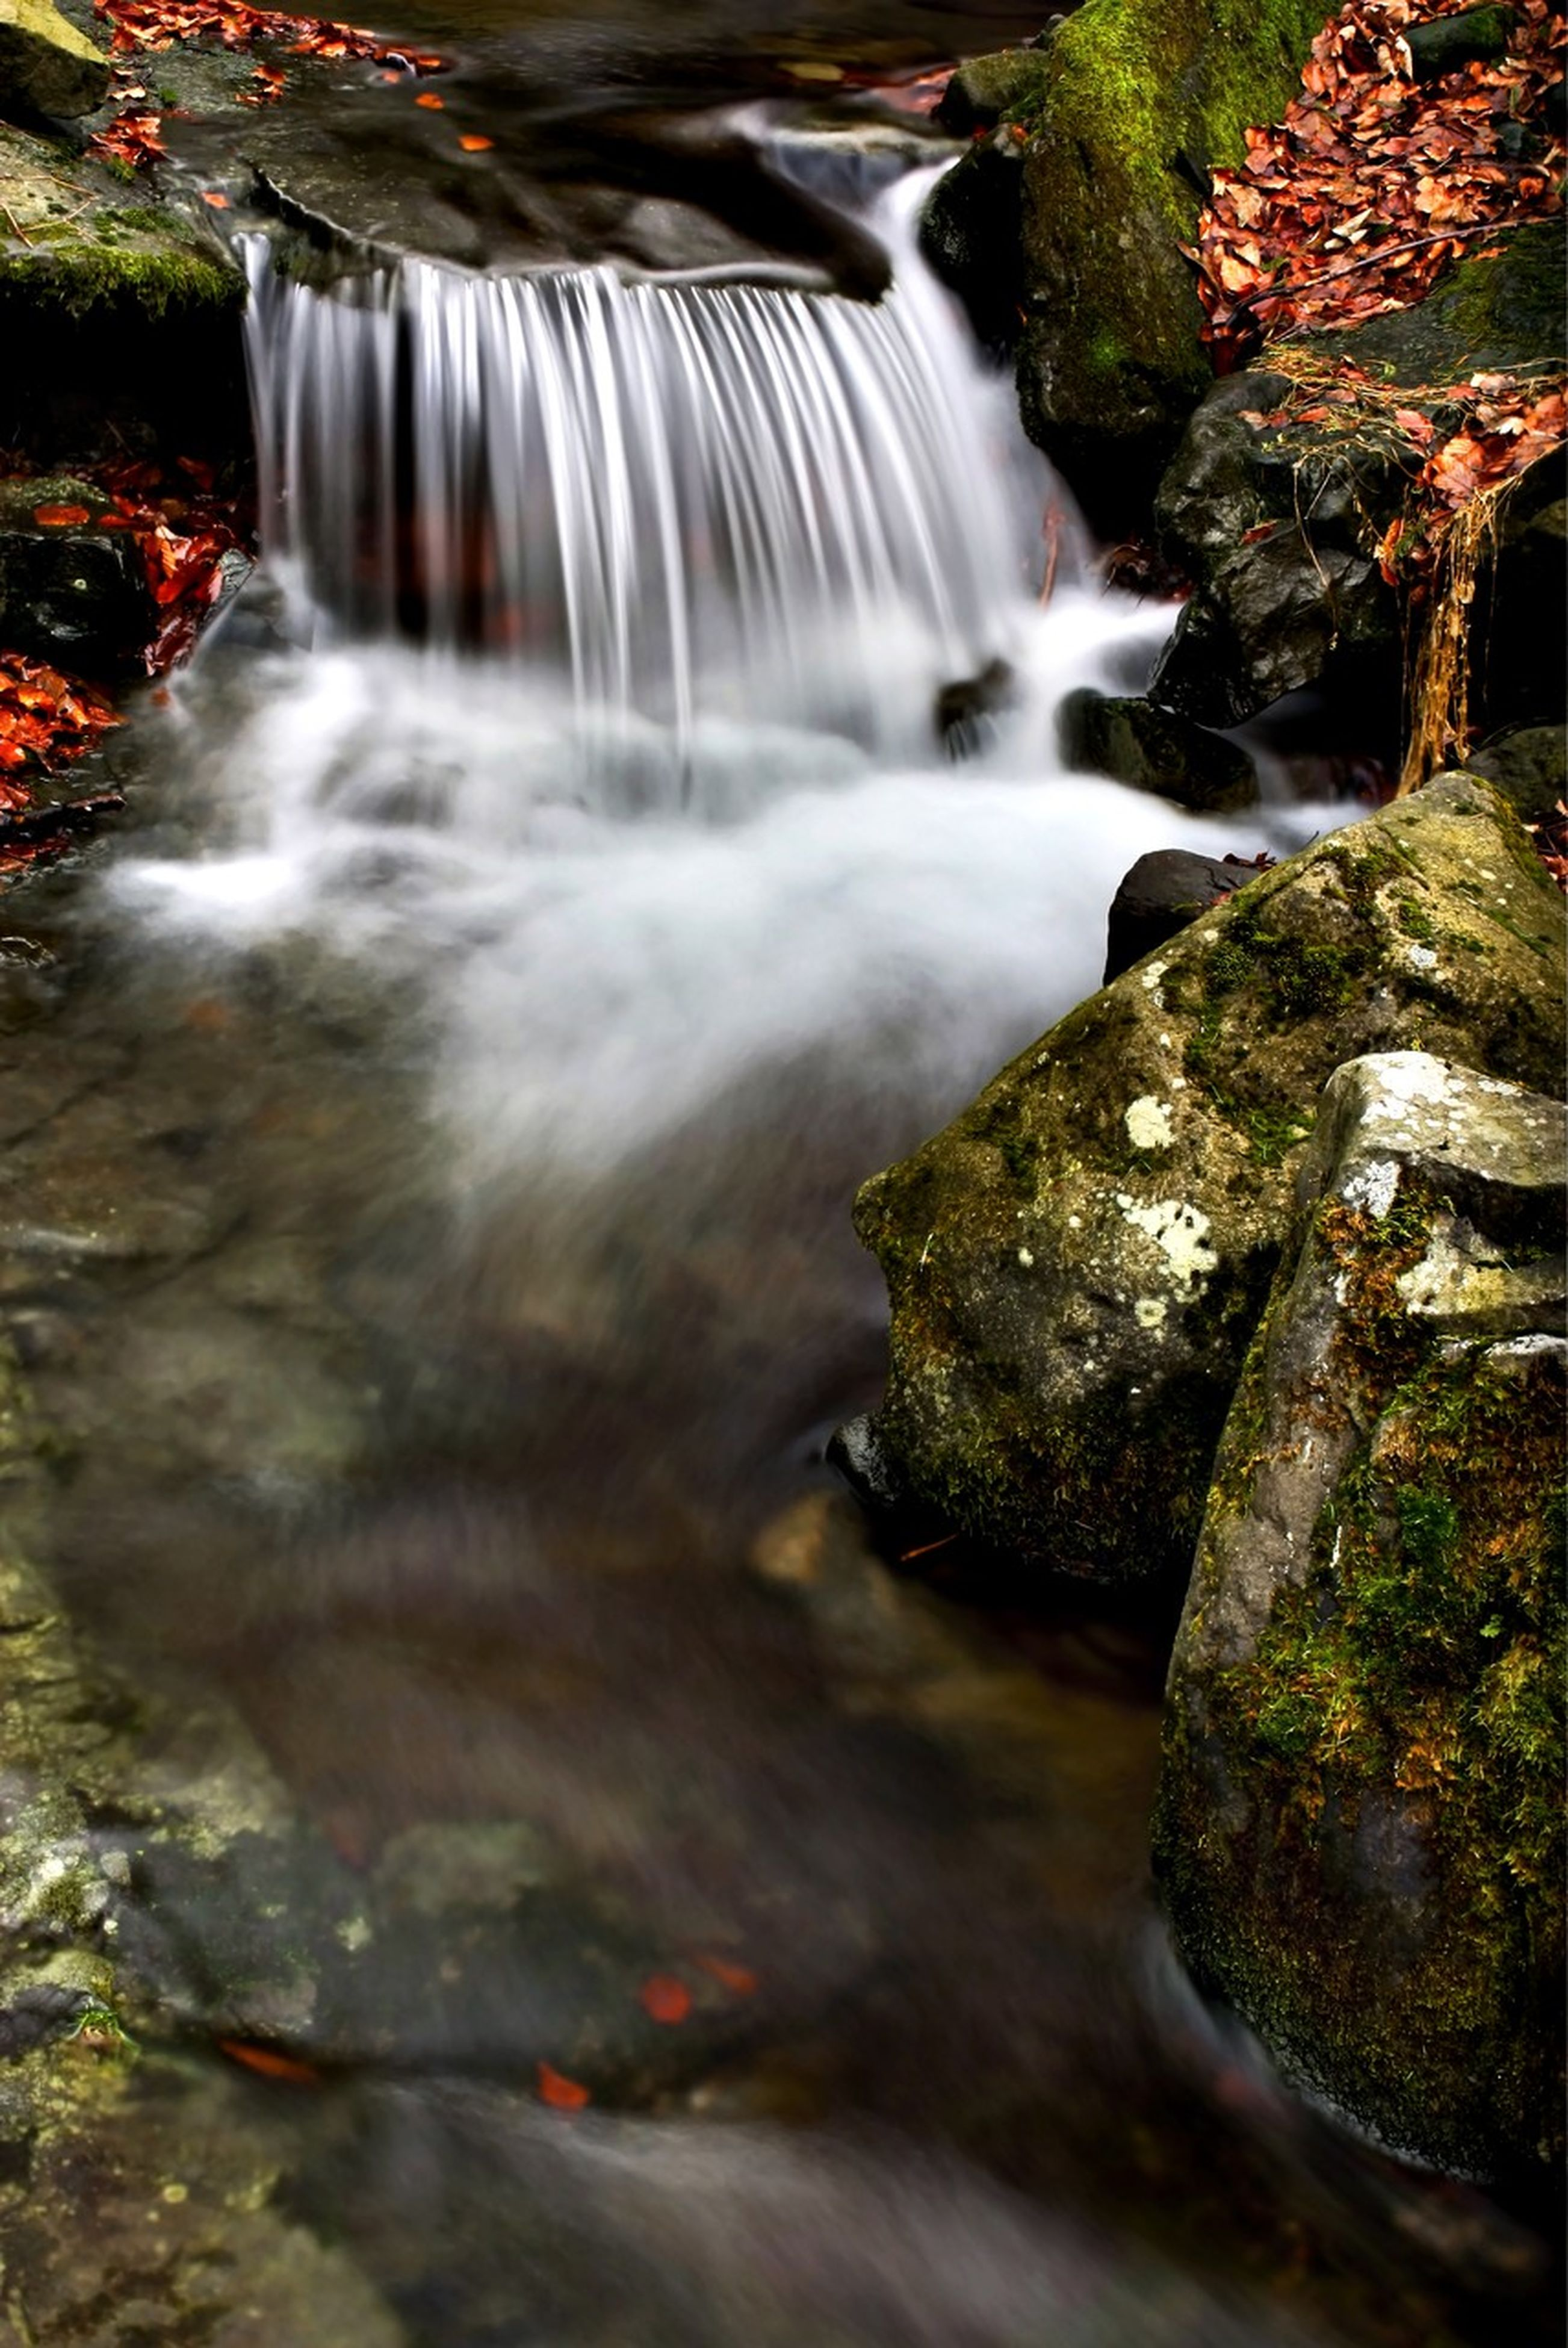 waterfall, flowing water, motion, long exposure, water, flowing, rock - object, beauty in nature, forest, blurred motion, scenics, nature, stream, power in nature, rock, environment, idyllic, rock formation, splashing, outdoors